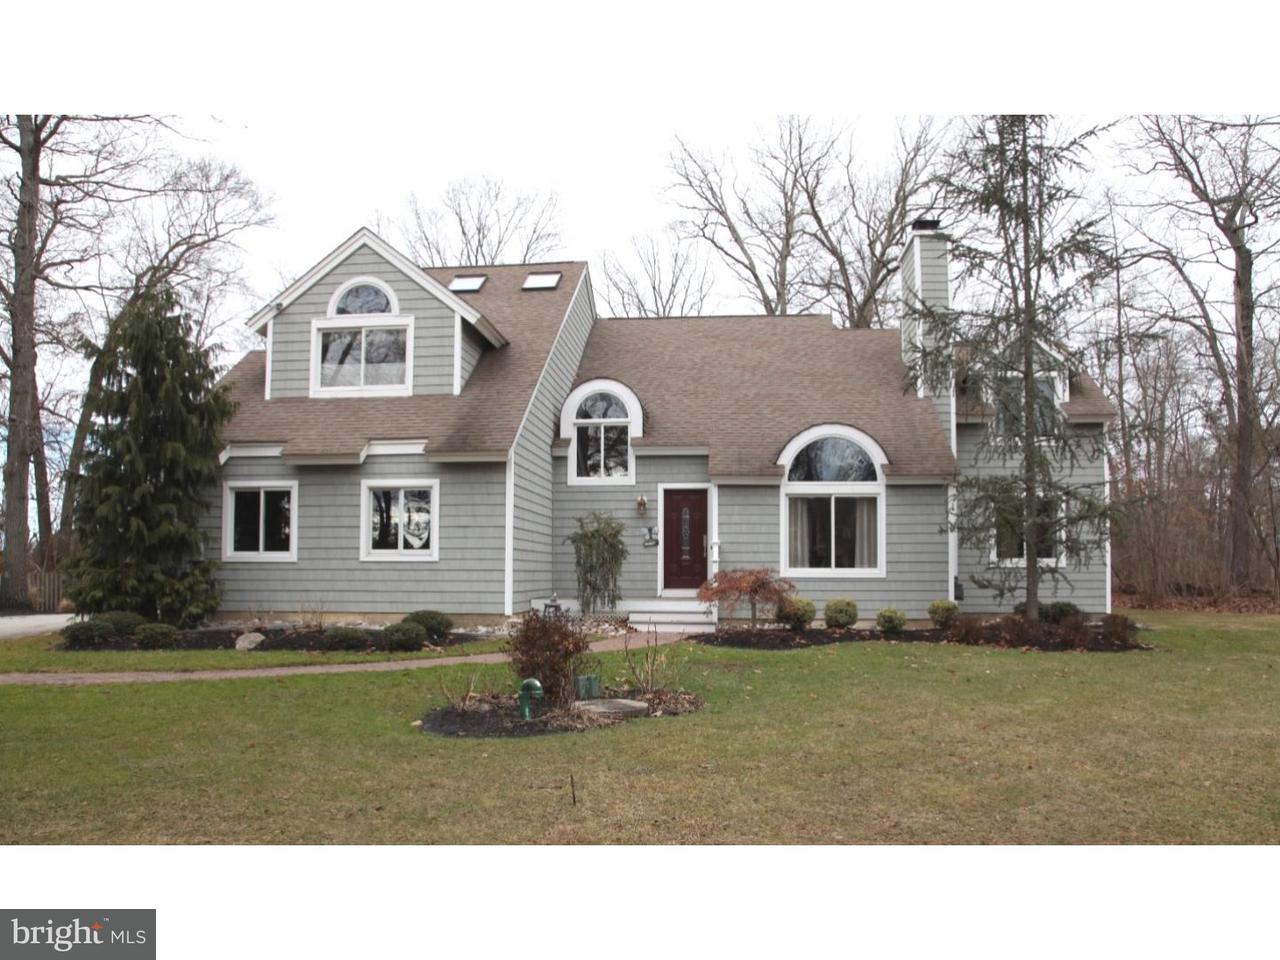 Single Family Home for Sale at 2 MILLS BROOK Lane Shamong Township, New Jersey 08088 United States